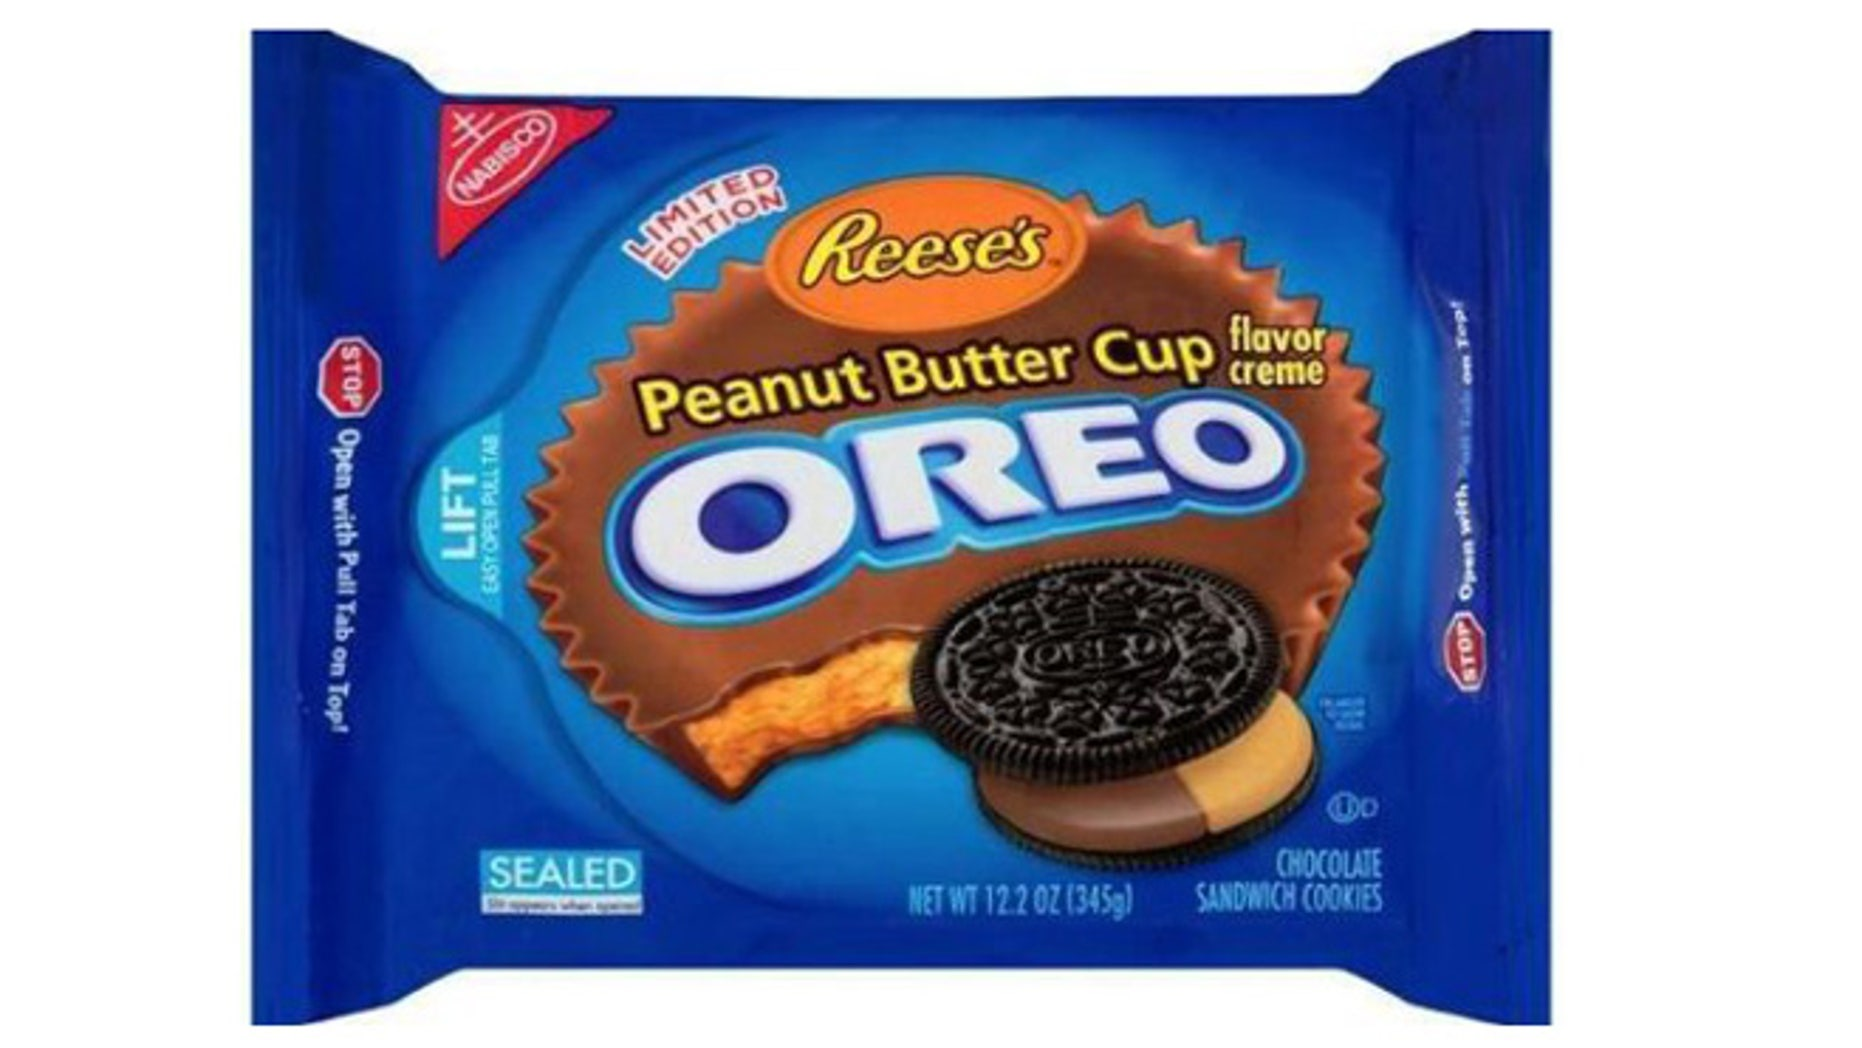 Reese' Peanut Butter Cup and Oreos, together at last.